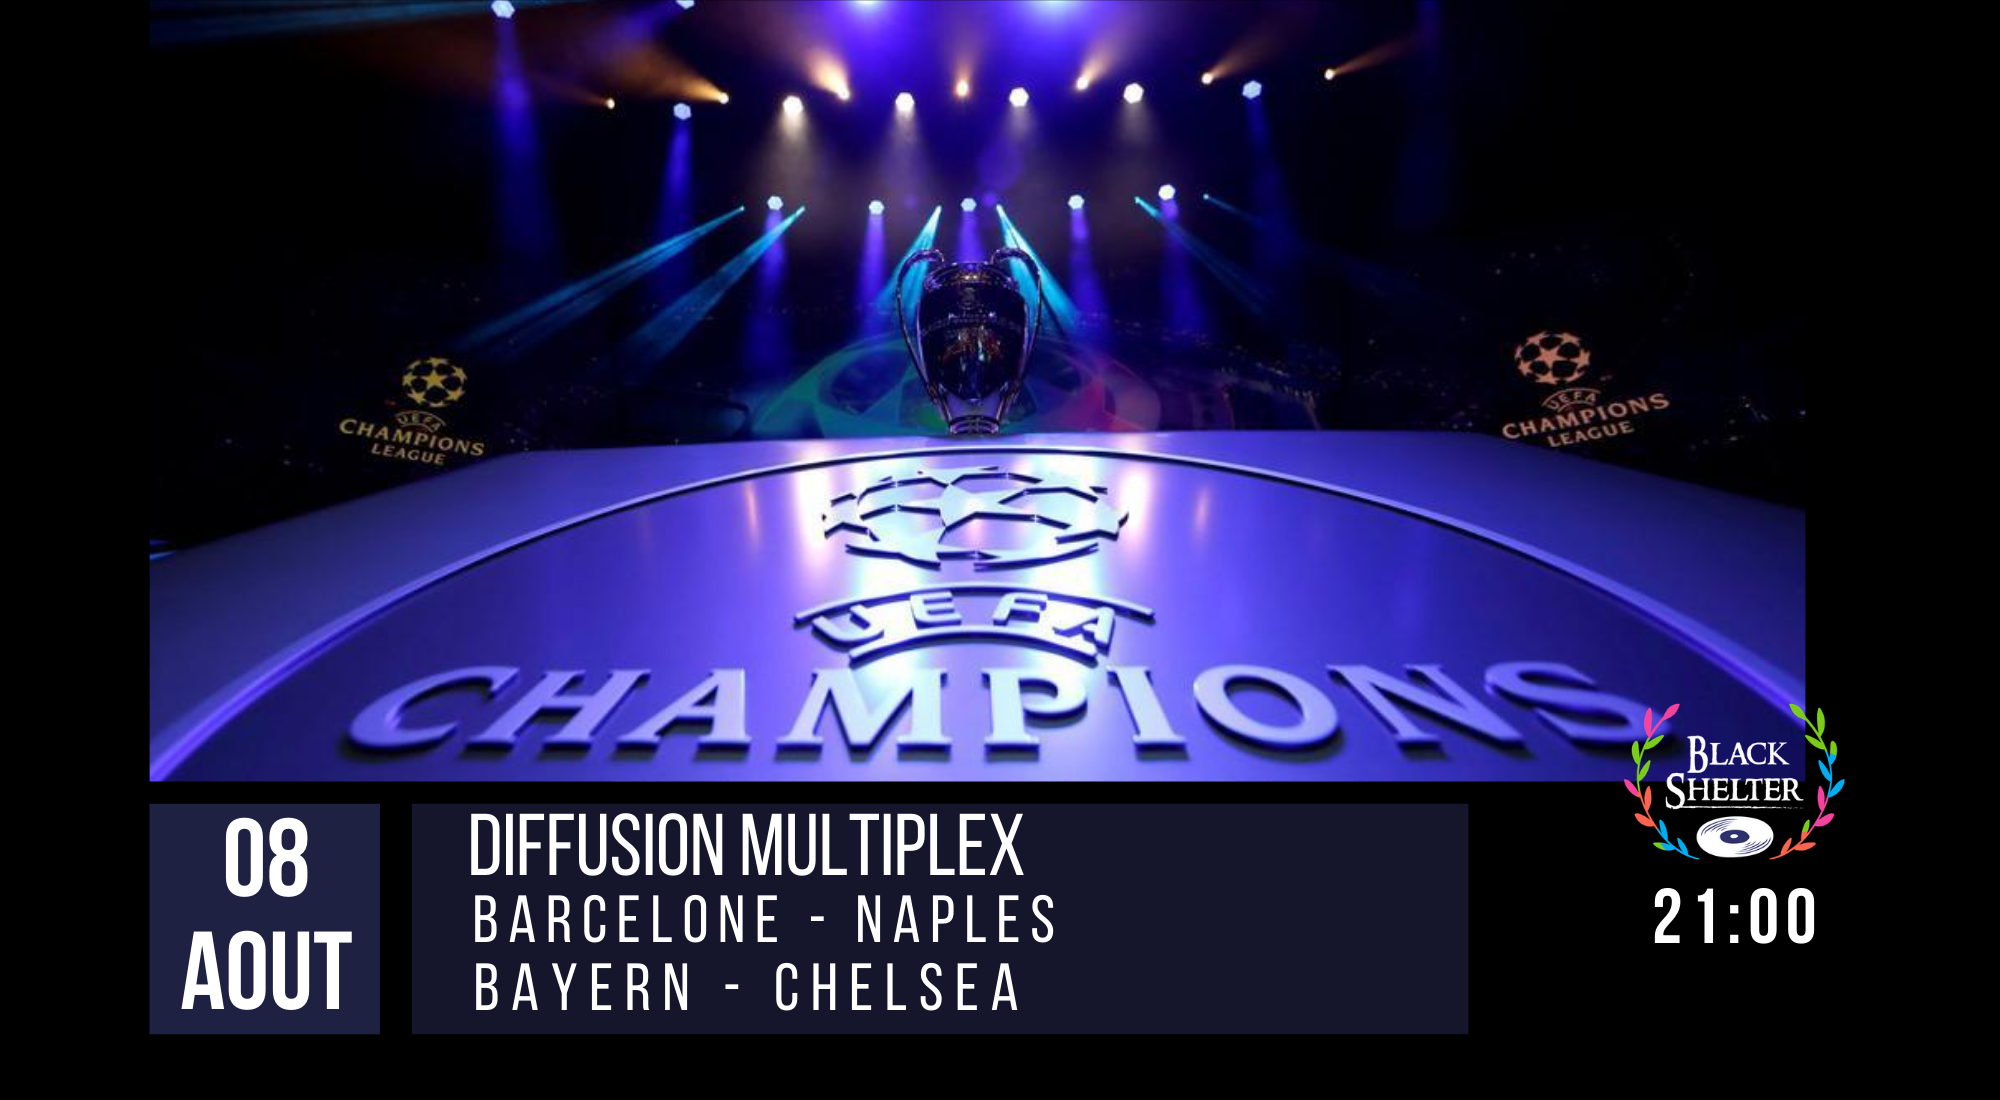 champions league black shelter